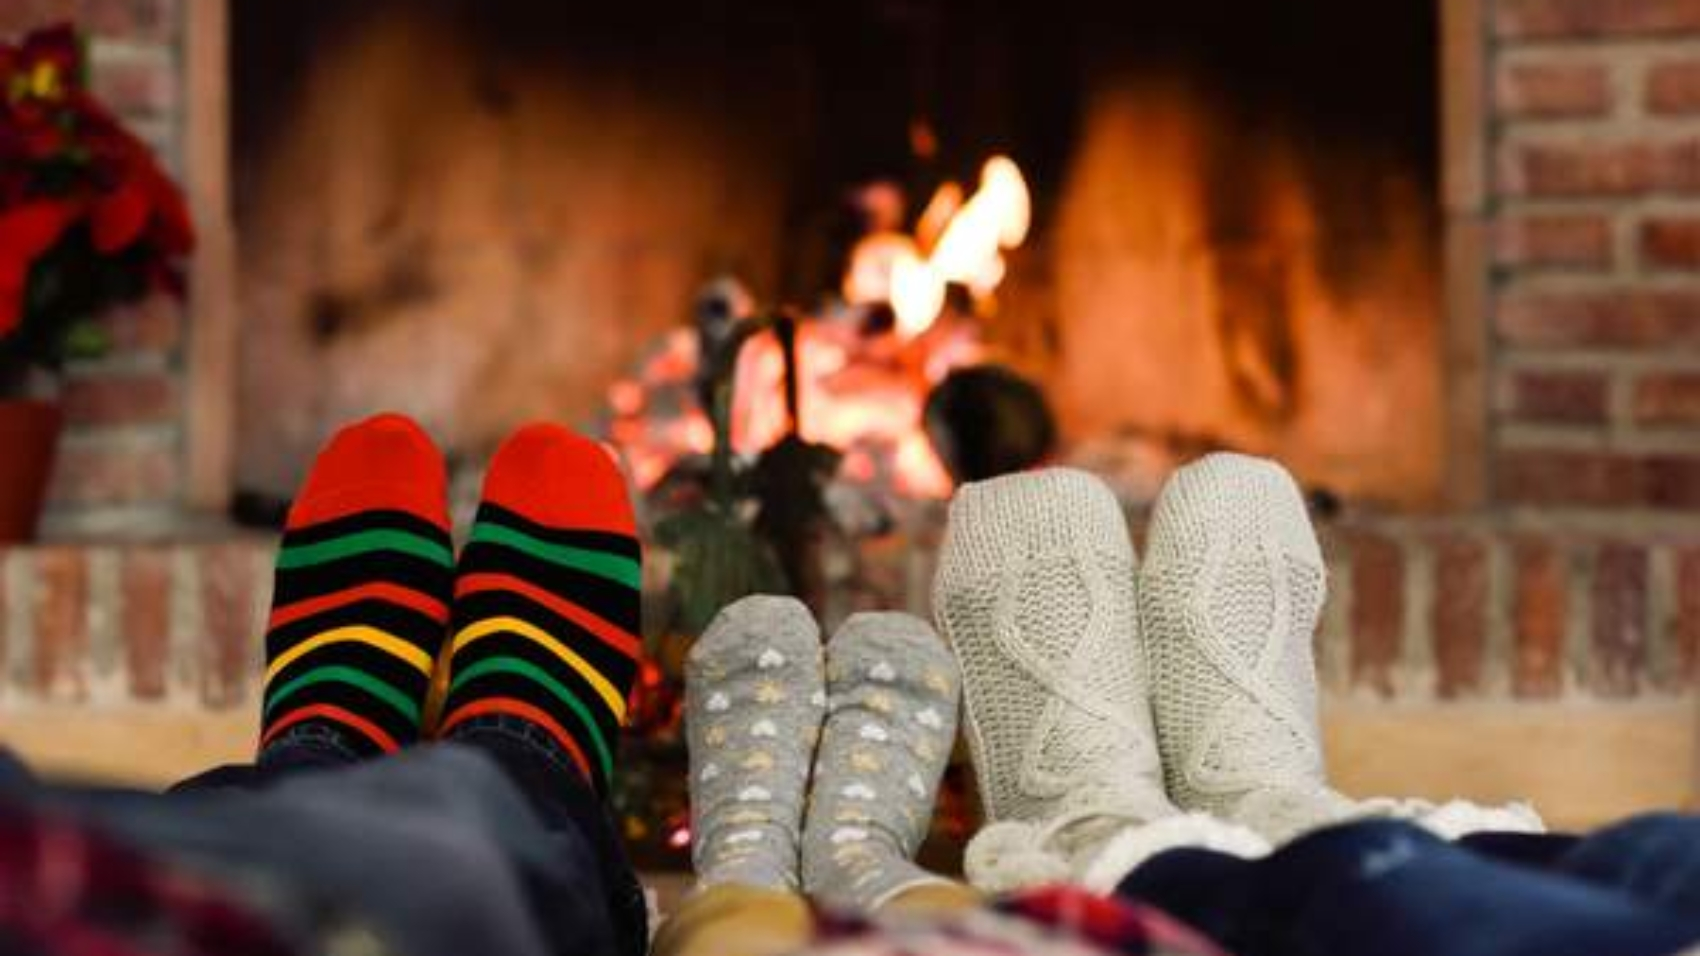 Fire safety in the winter